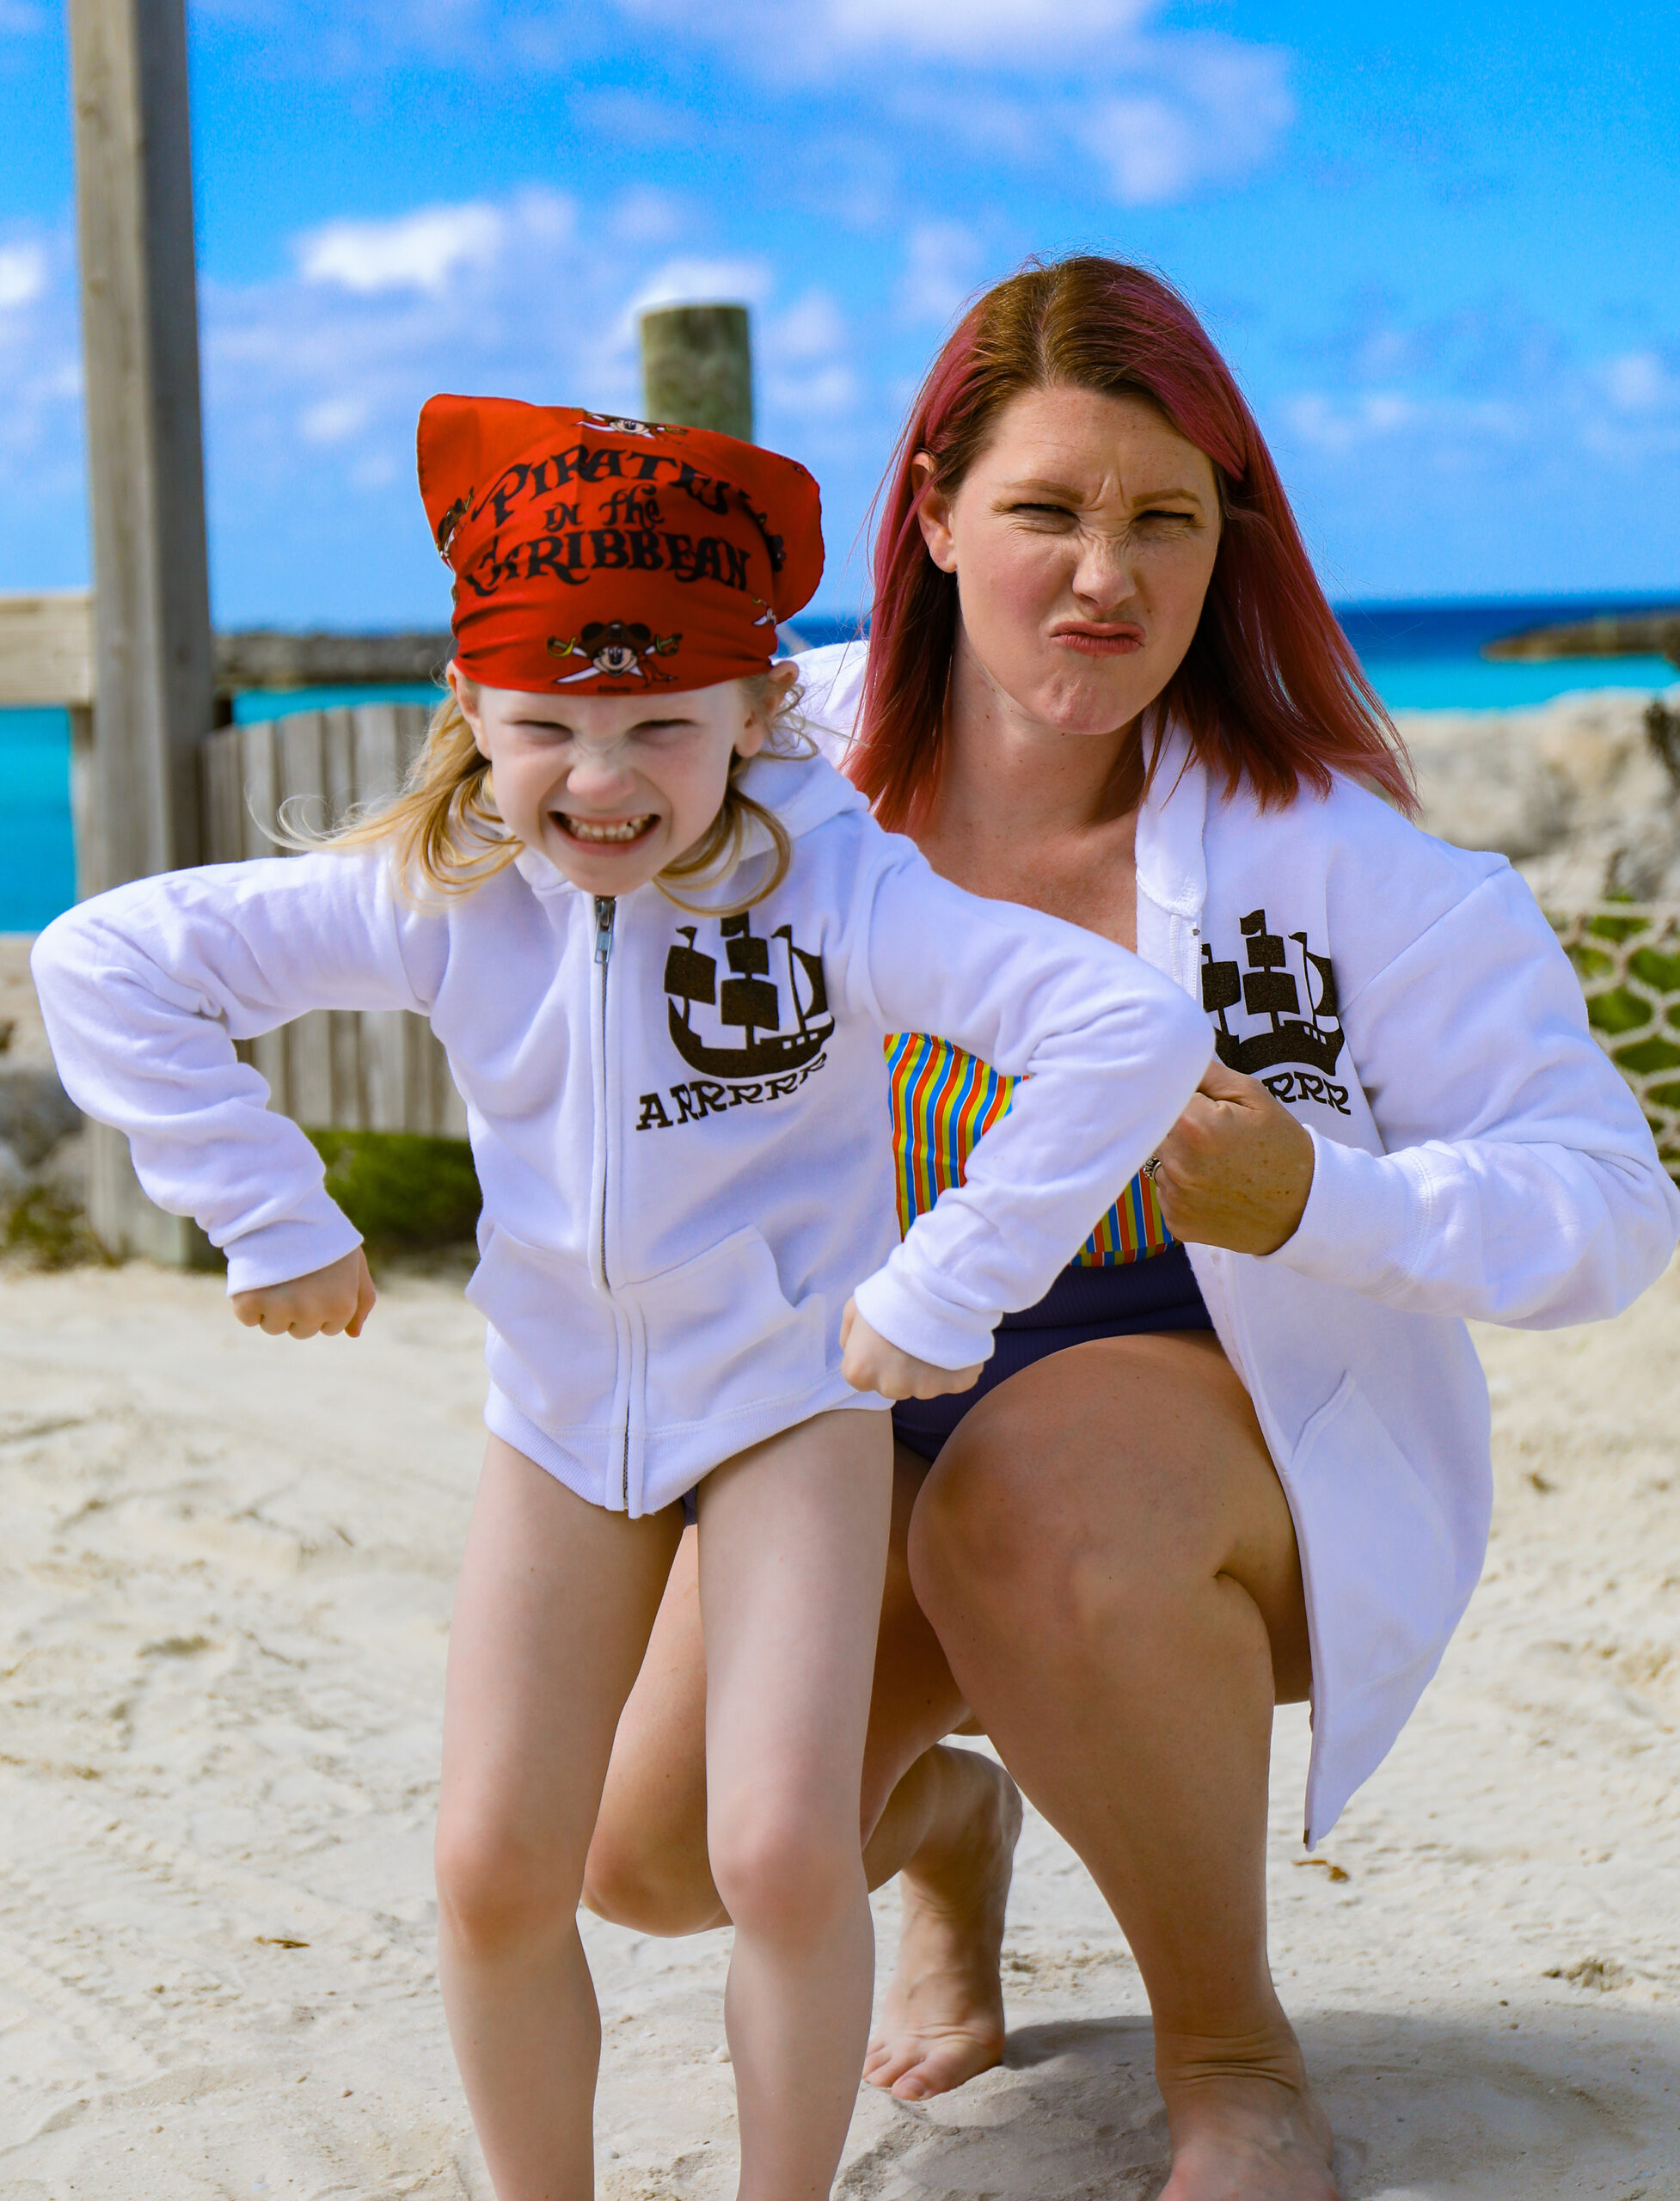 Headed on a Disney Cruise? These are the BEST family shirts to bring along!